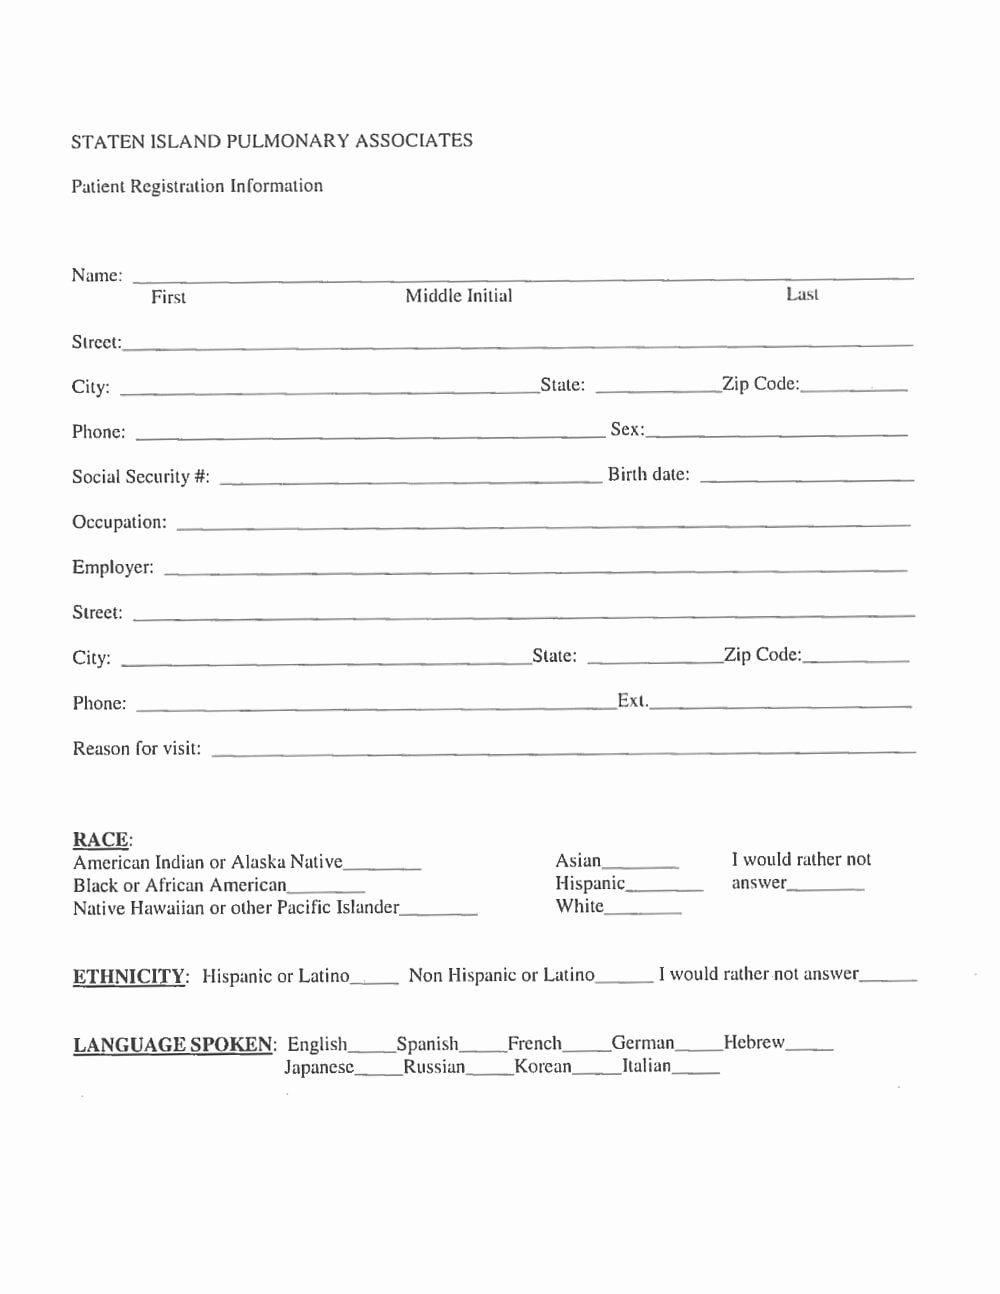 New Patient Registration form Template Fresh New Patient Registration form – Staten island Pulmonary